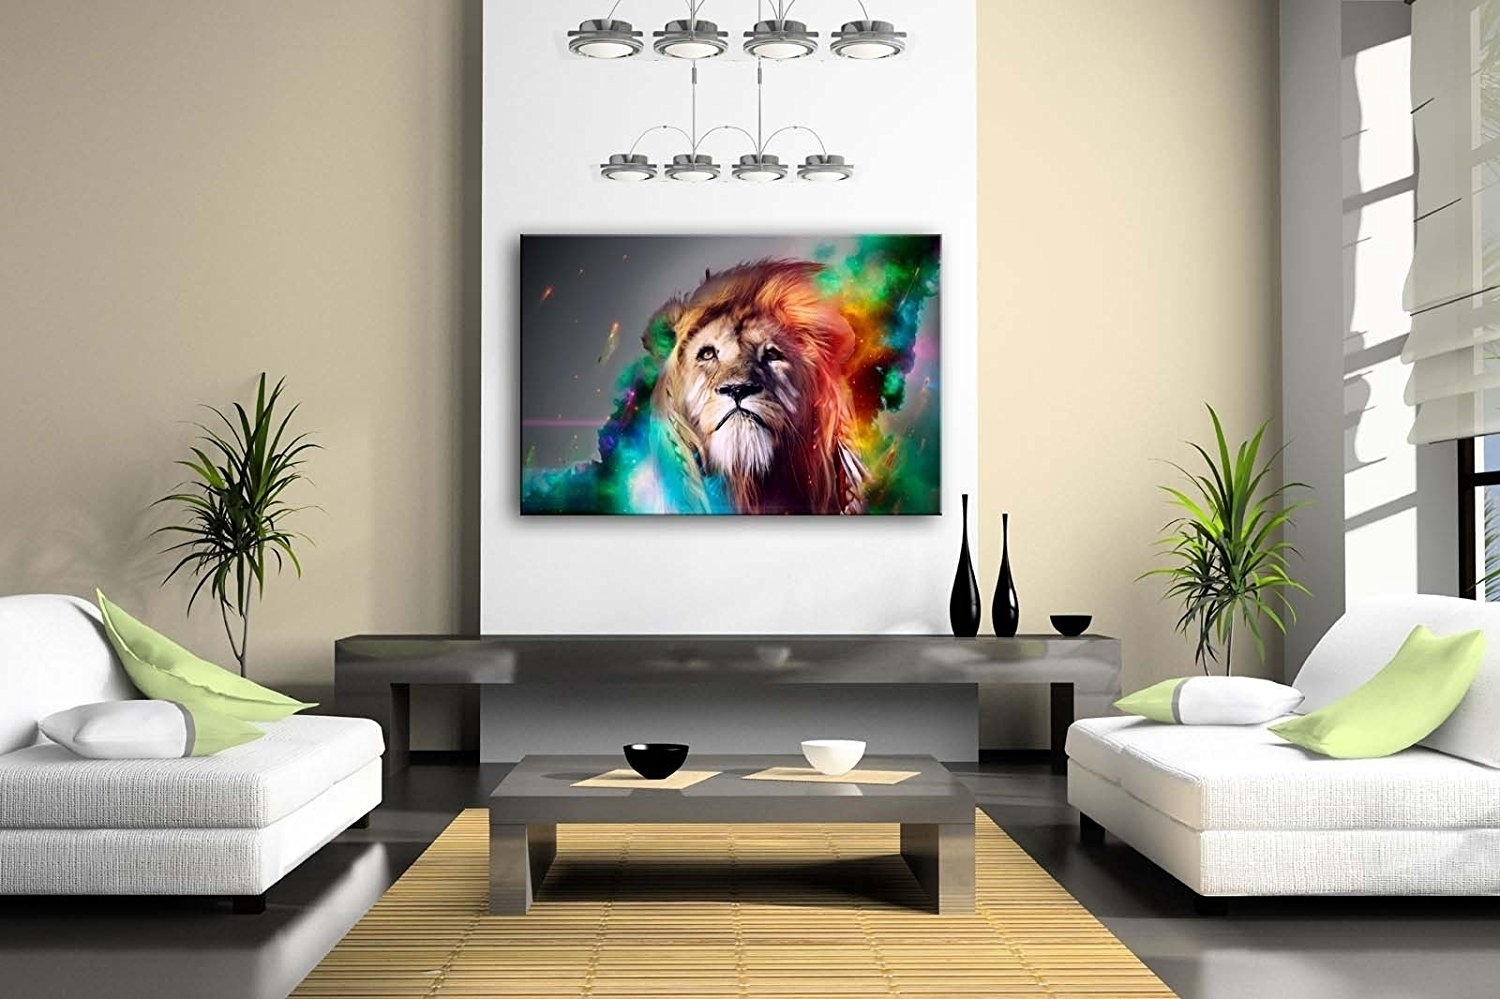 Living Room Paintings Decorations Wall Decor Target Bedroom Fresh within Living Room Painting Wall Art (Image 15 of 20)